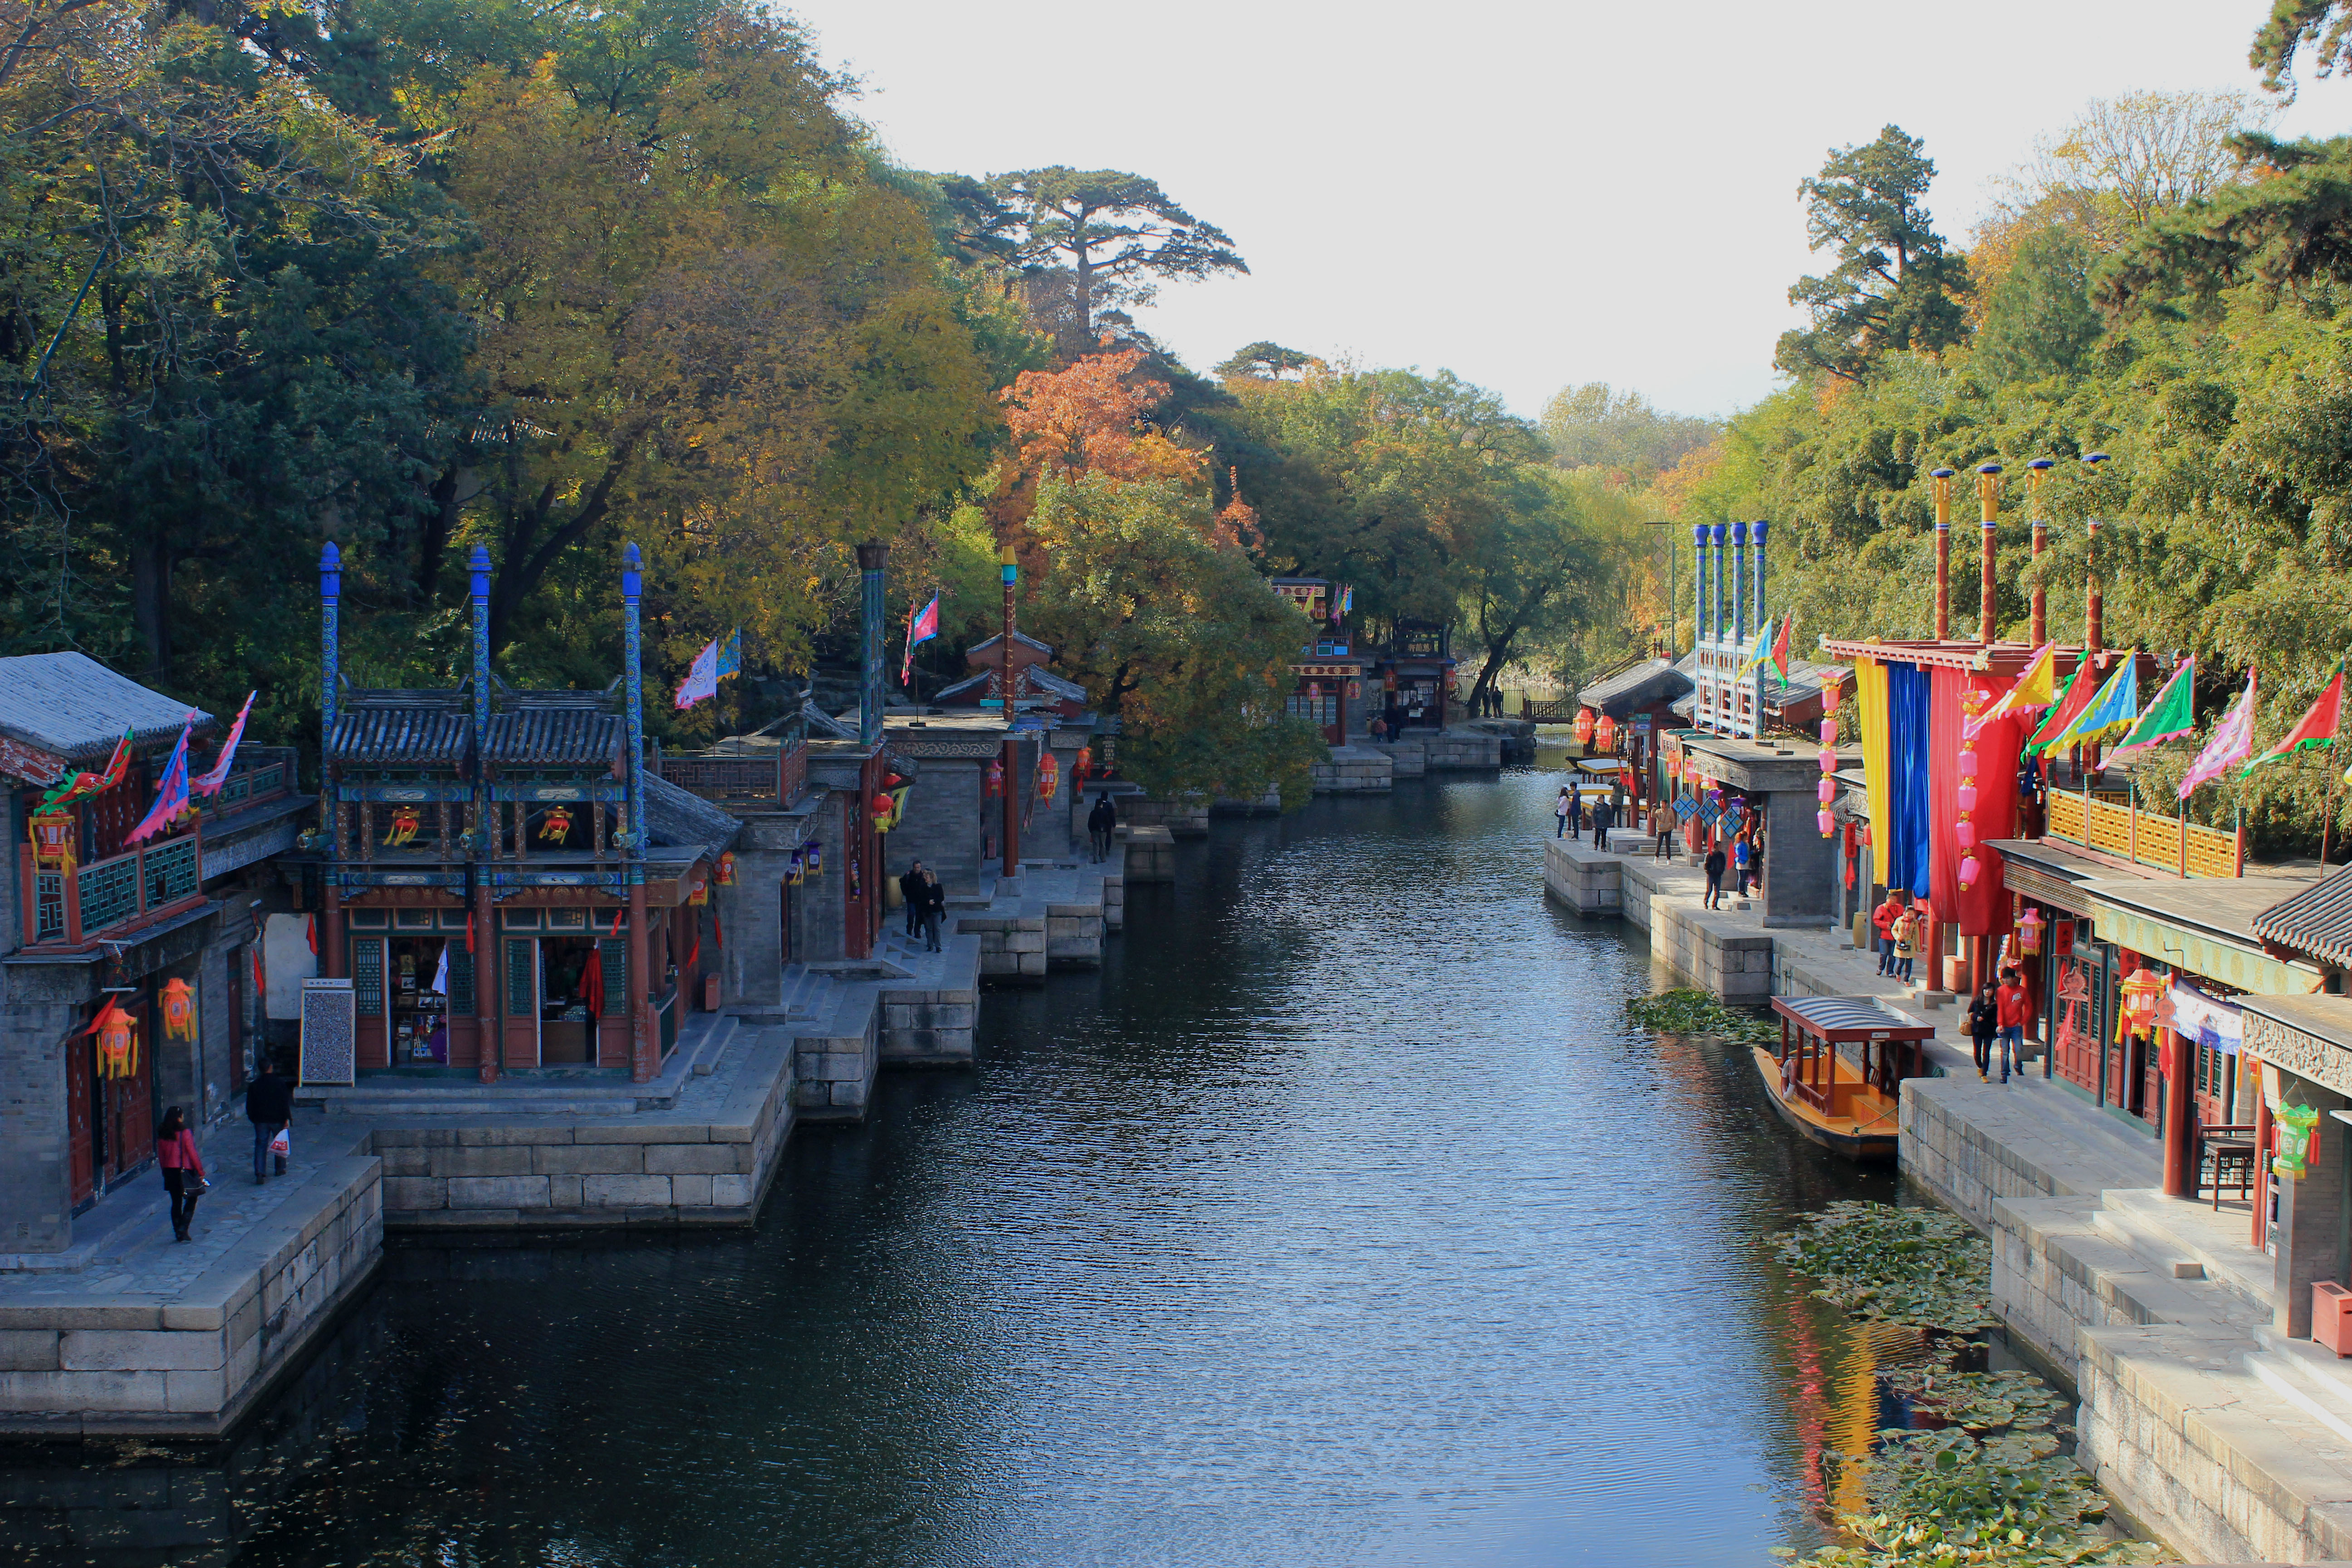 The Summer Palace in Beijing: A tranquil spot amidst the chaos -